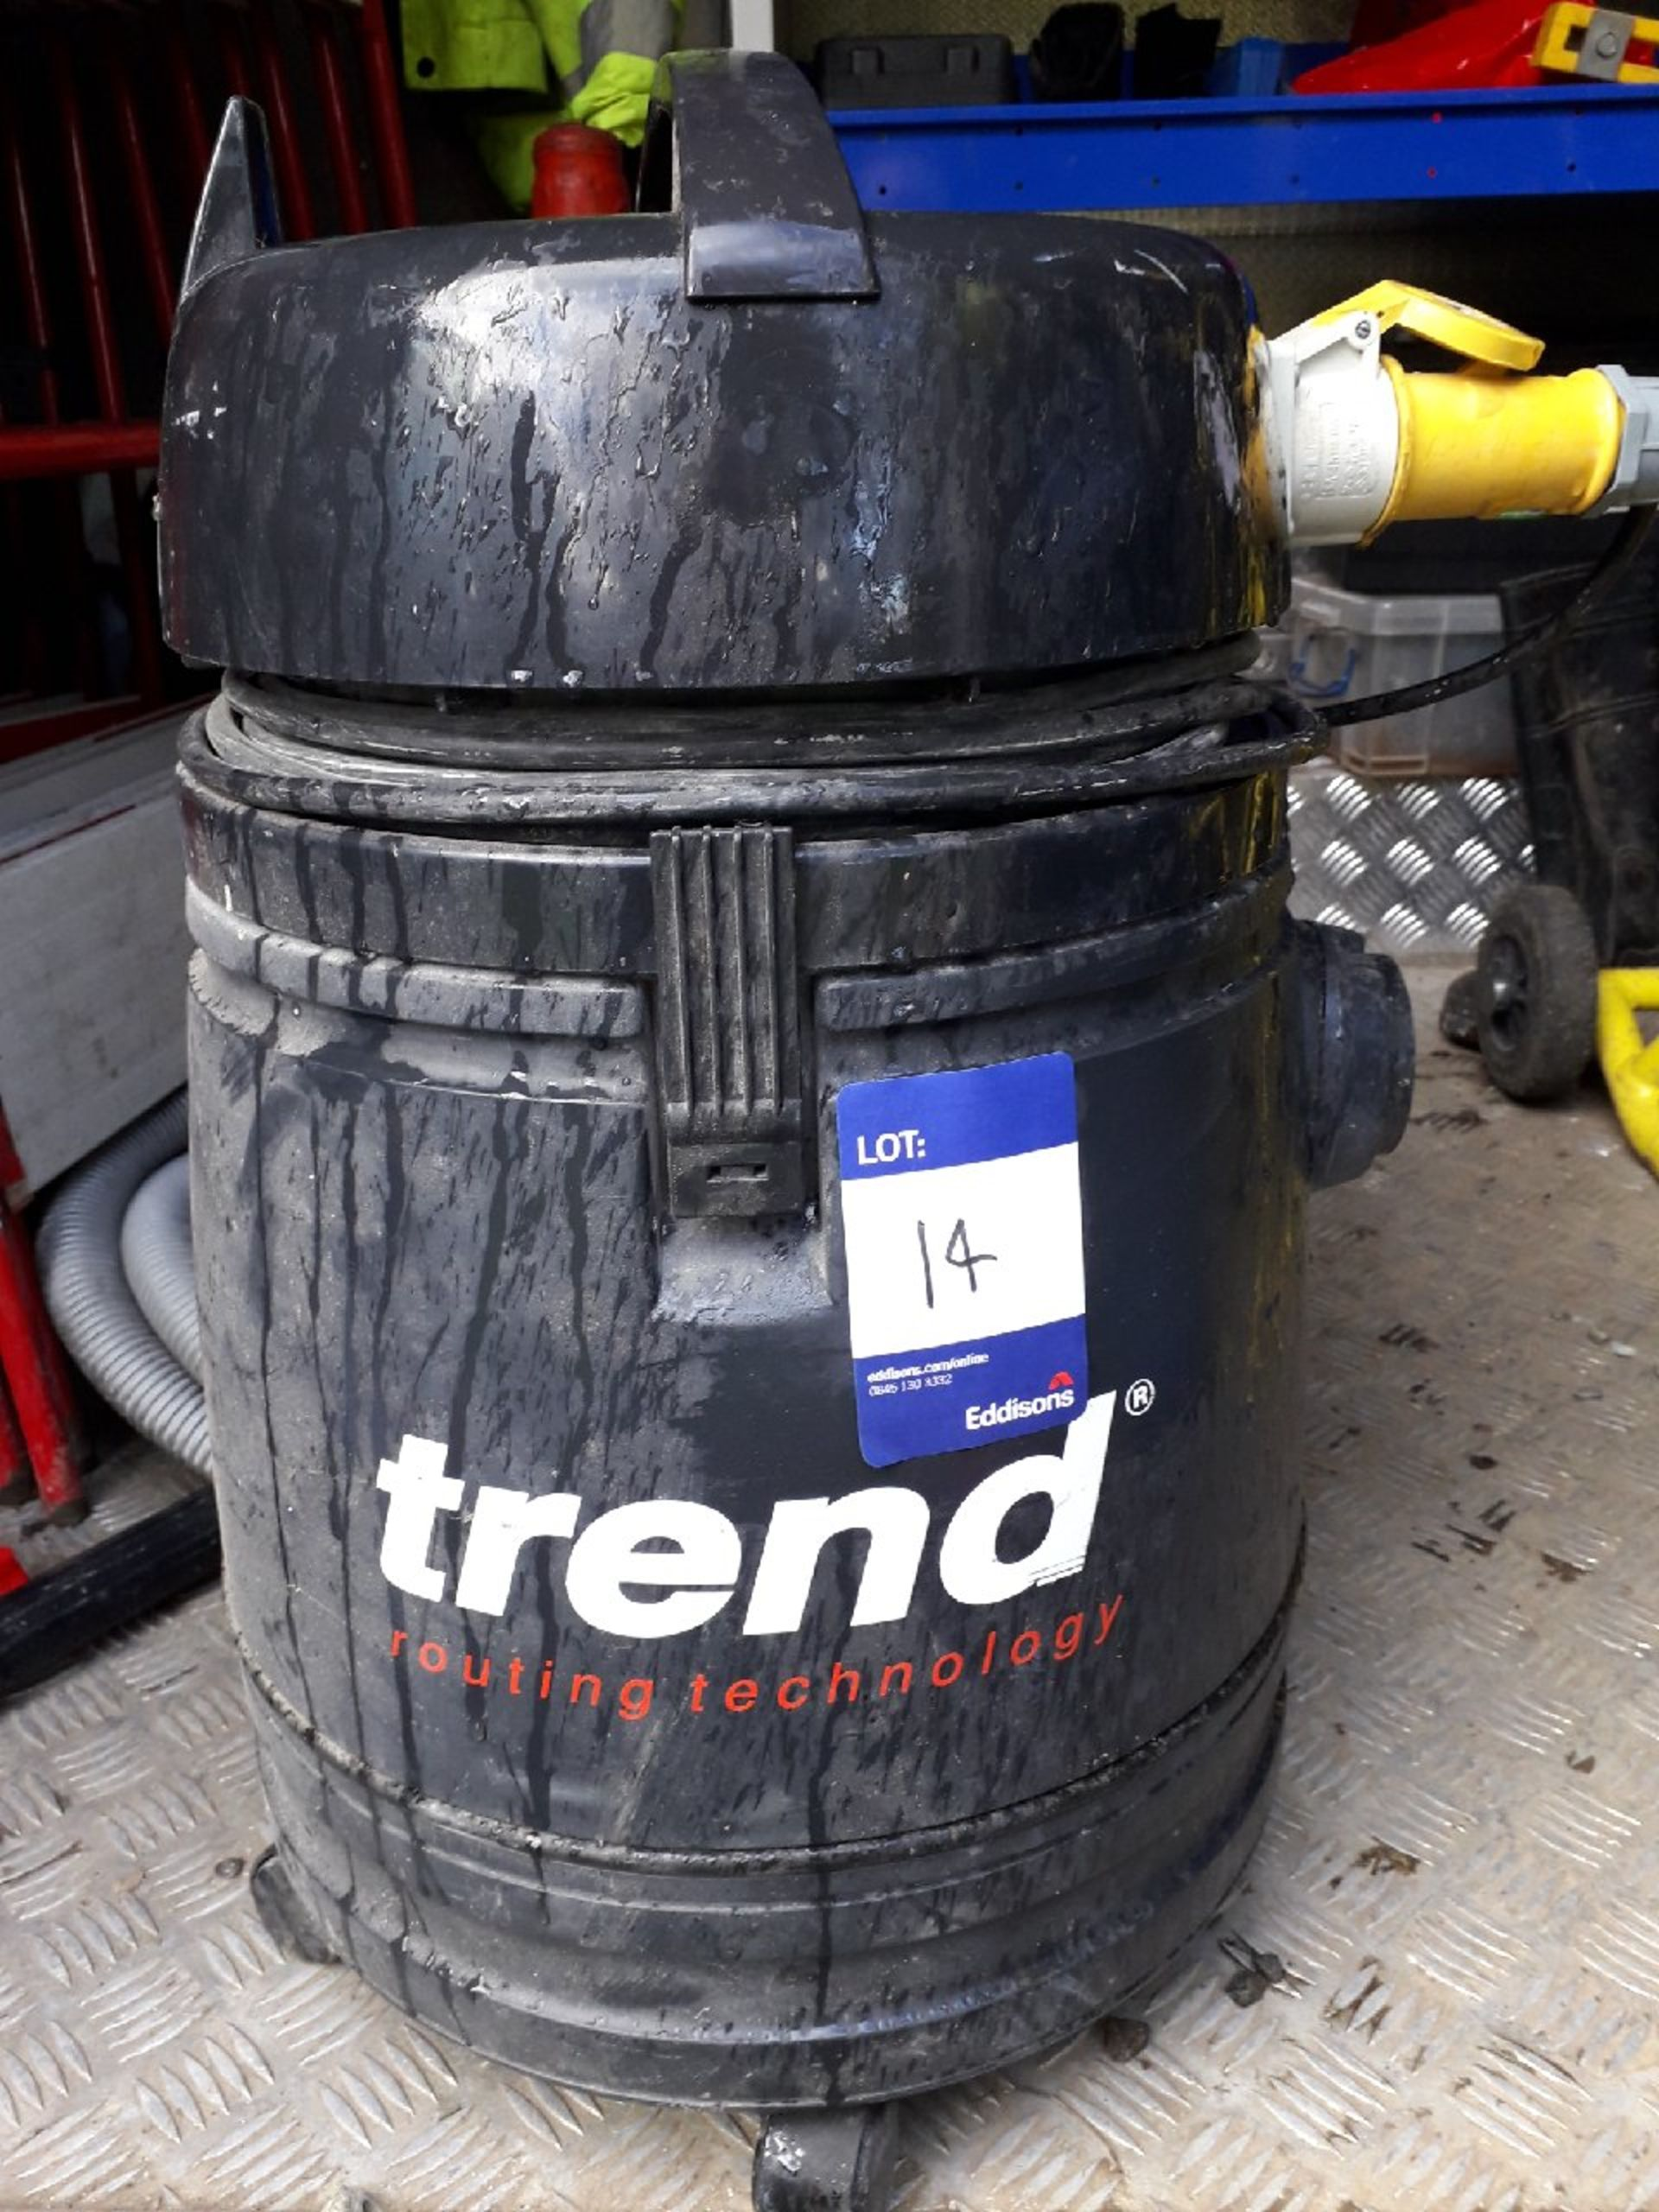 Lot 14 - Trend T30 ALF wet & dry vacuum serial number 3-007527 110v. (Please note: Viewing is by